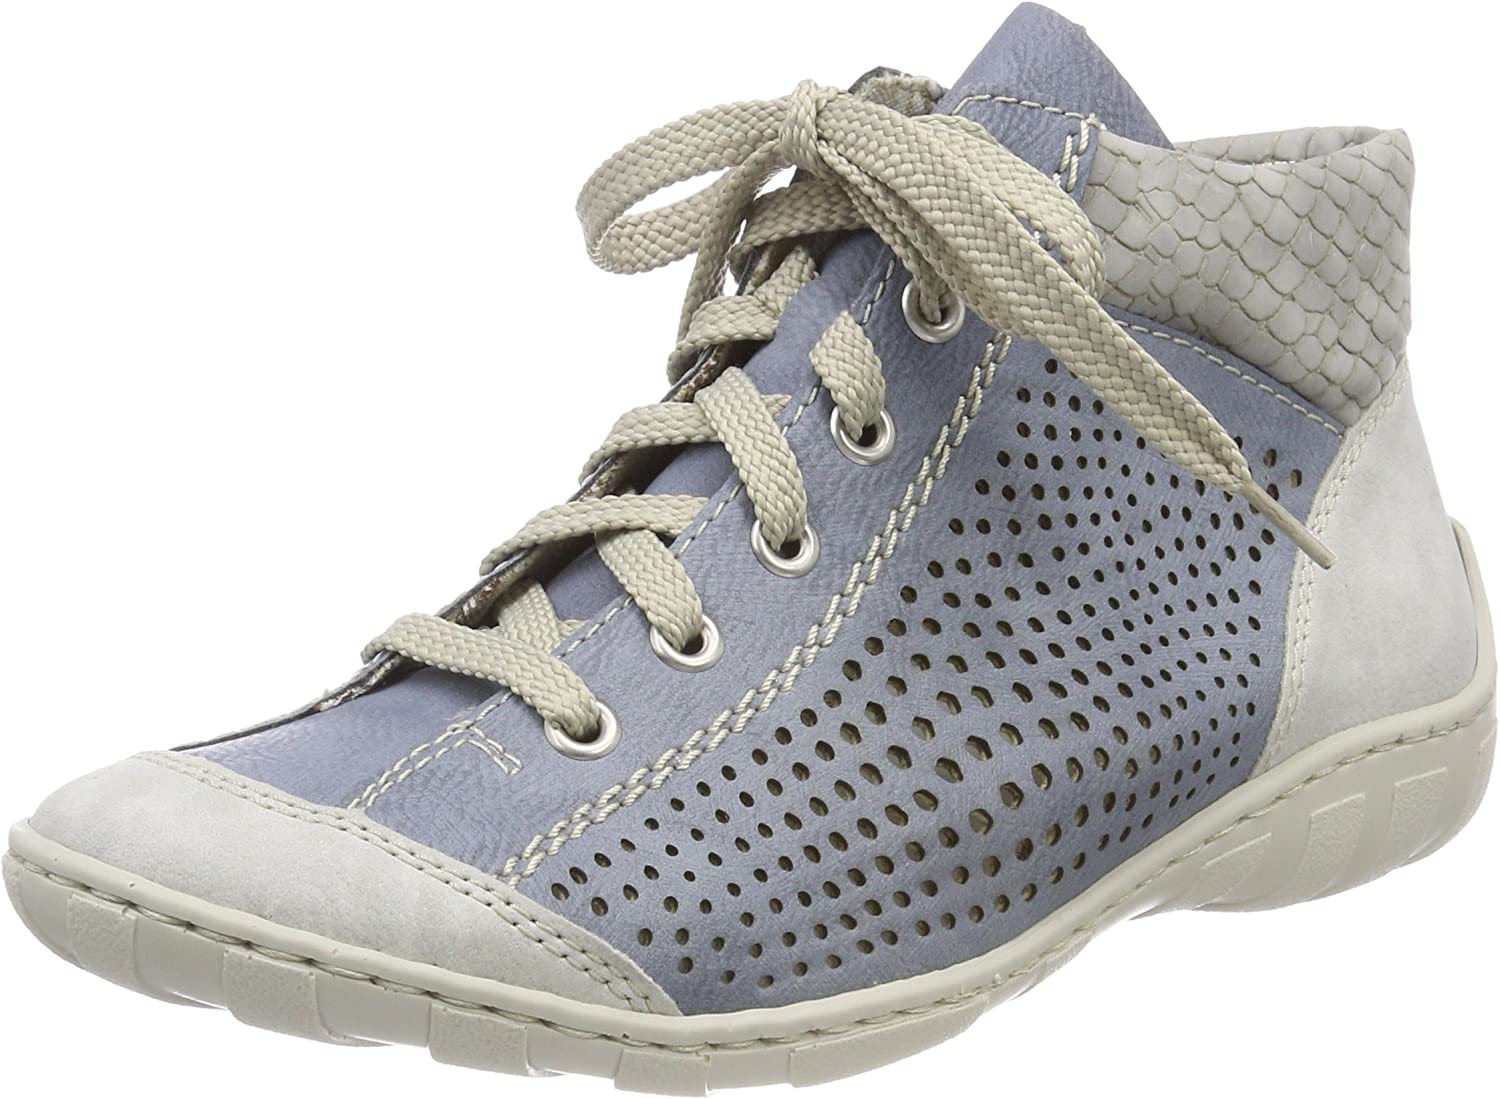 Rieker Damen M3746 High Top, Blau (FogAdriaCement), 37 EU bJG84